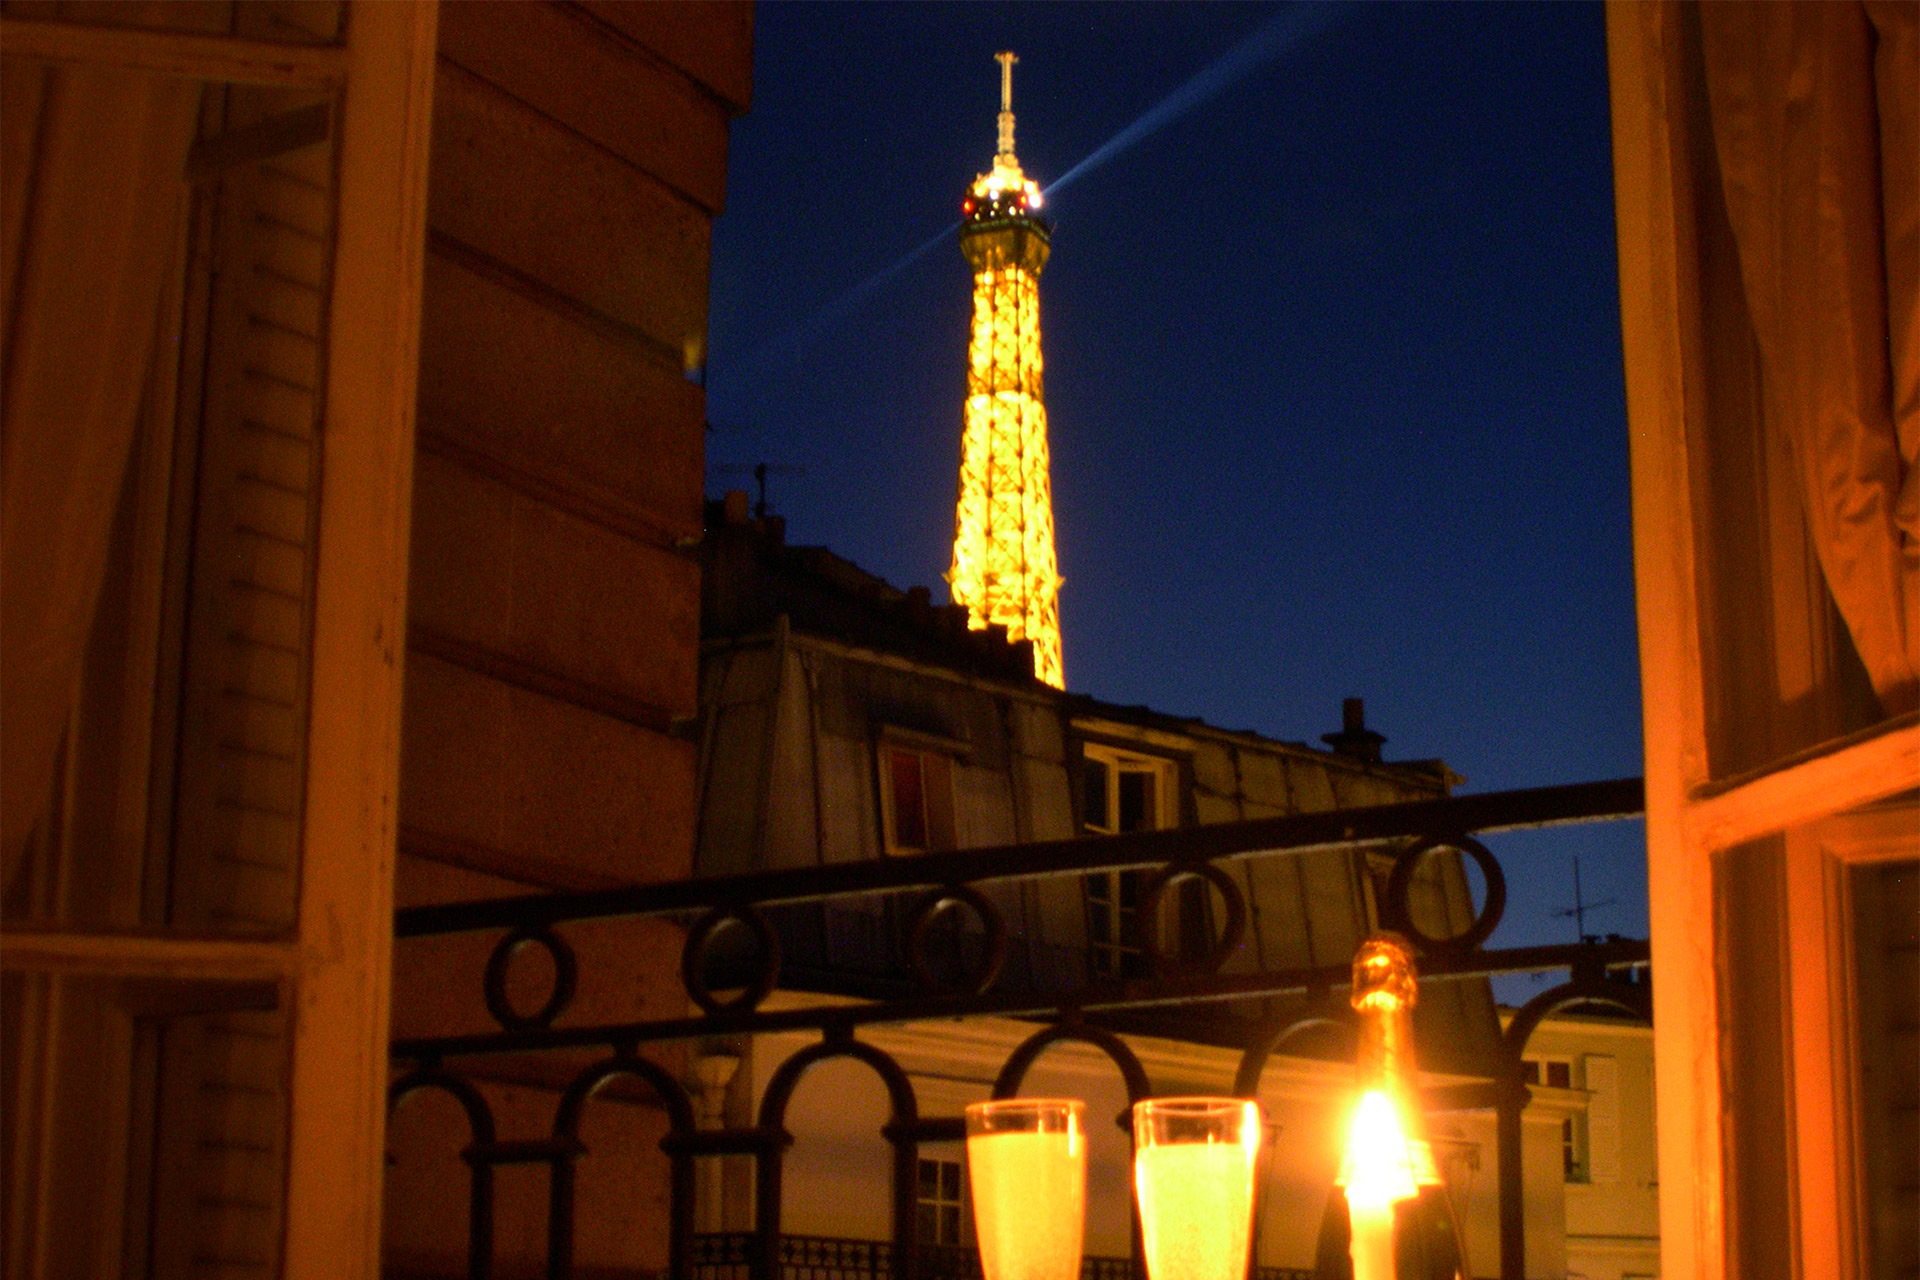 Watch the lights sparkle on the Eiffel Tower at the Chateauneuf vacation rental offered by Paris Perfect